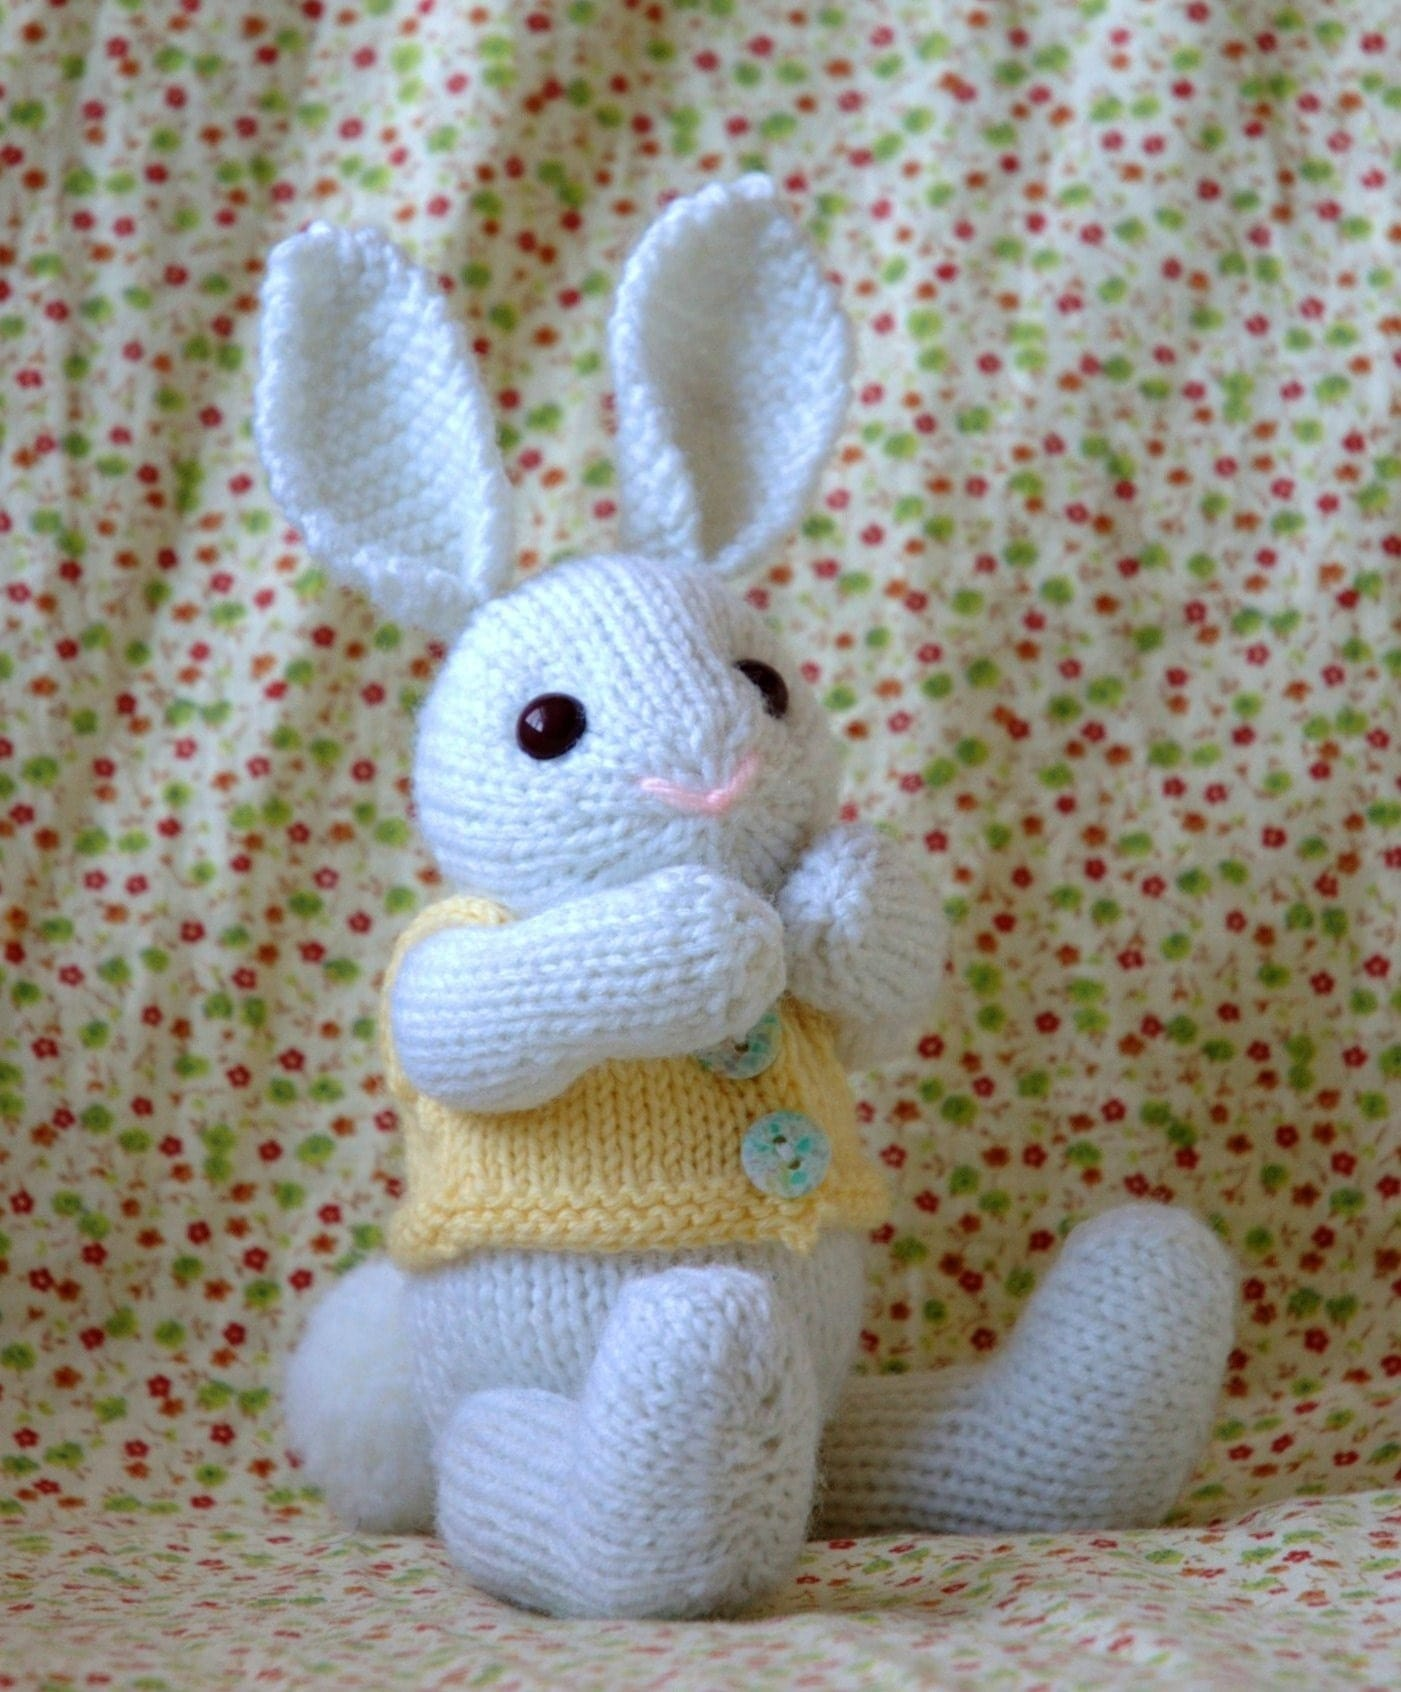 Easter Bunny Knitting Pattern : Knitting Pattern Easter Bunny PDF File by fuzzymitten on Etsy